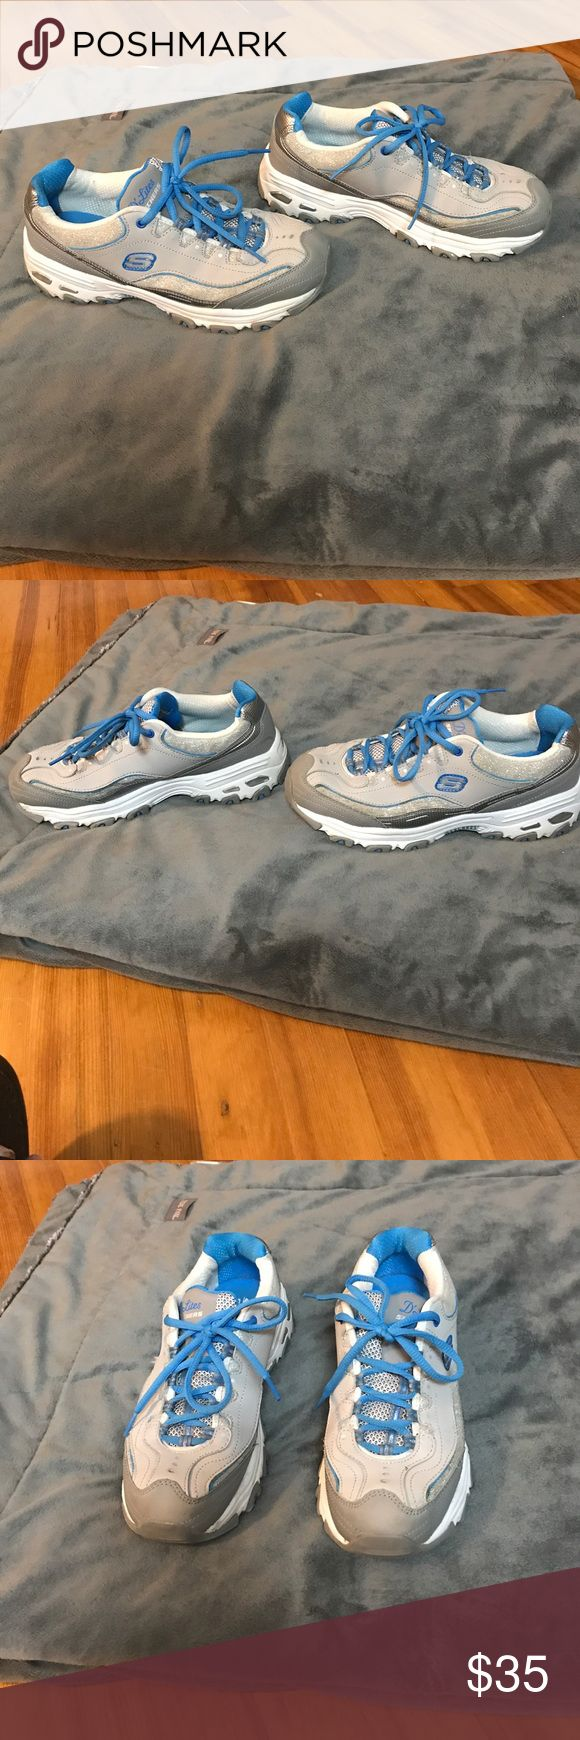 Skechers D' Lites Sport Shoes Worn once Skechers D' Lites Sport Shoes in size Women 8. These shoes are a grey and sky blue with metallic silver and then areas of silver glitter. Skechers Shoes Athletic Shoes